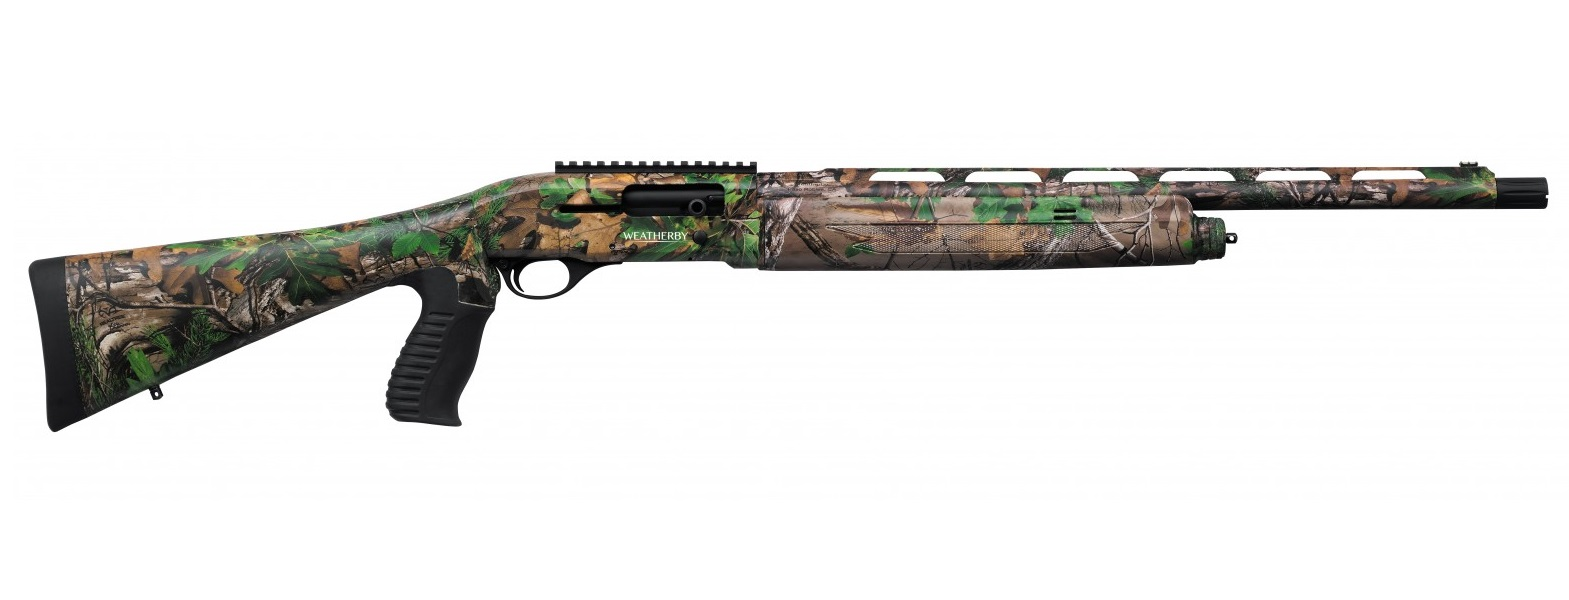 Weatherby SA-459 Turkey 12 Gauge